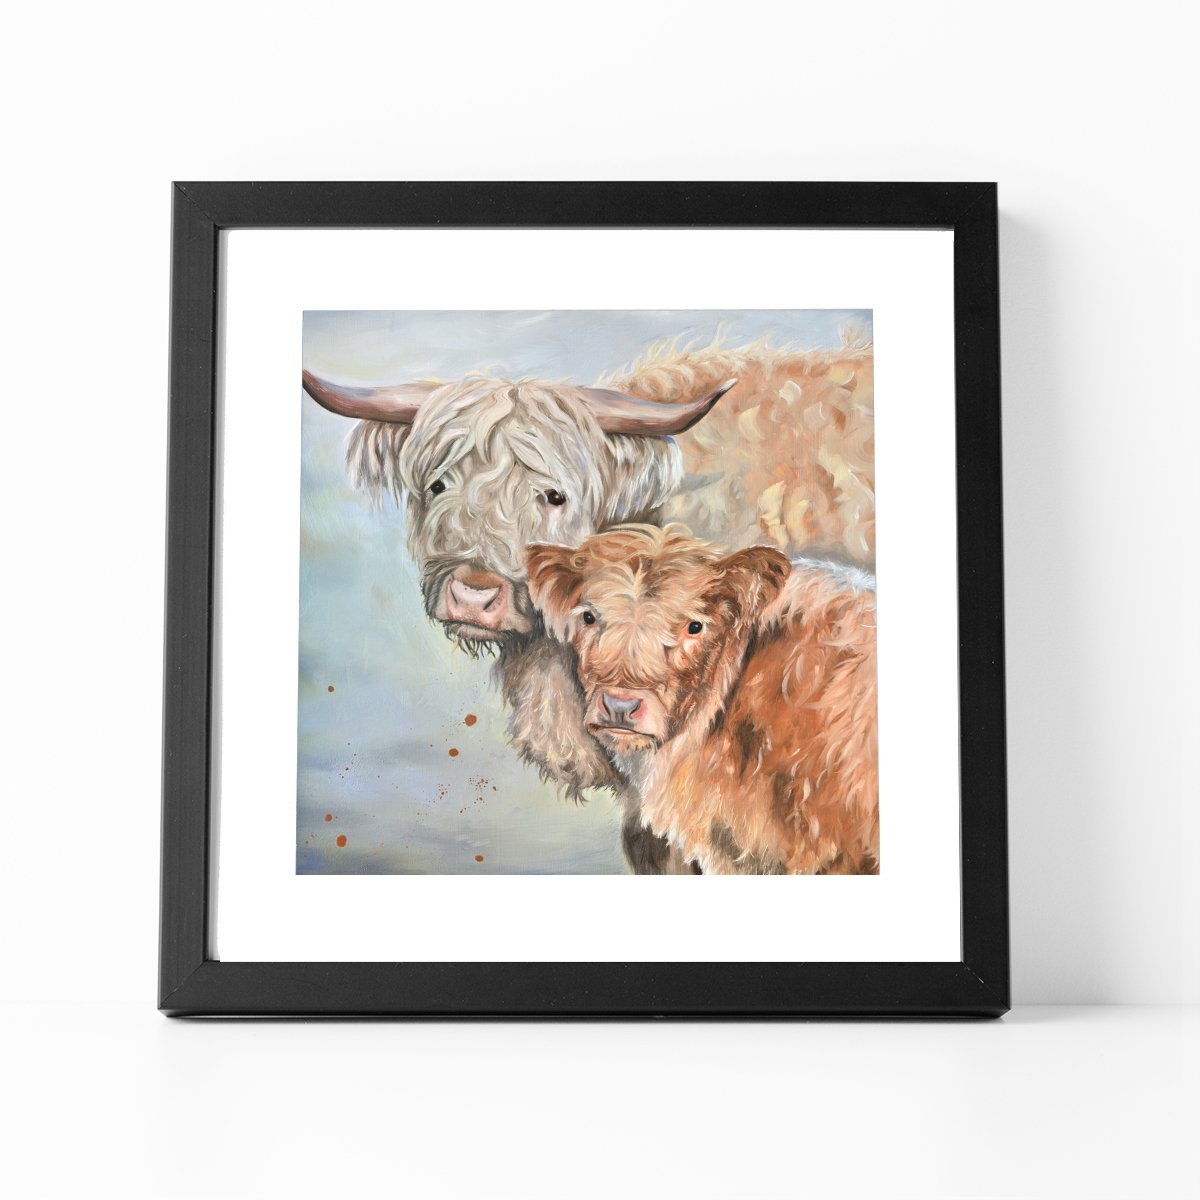 Lumi and Floss framed print